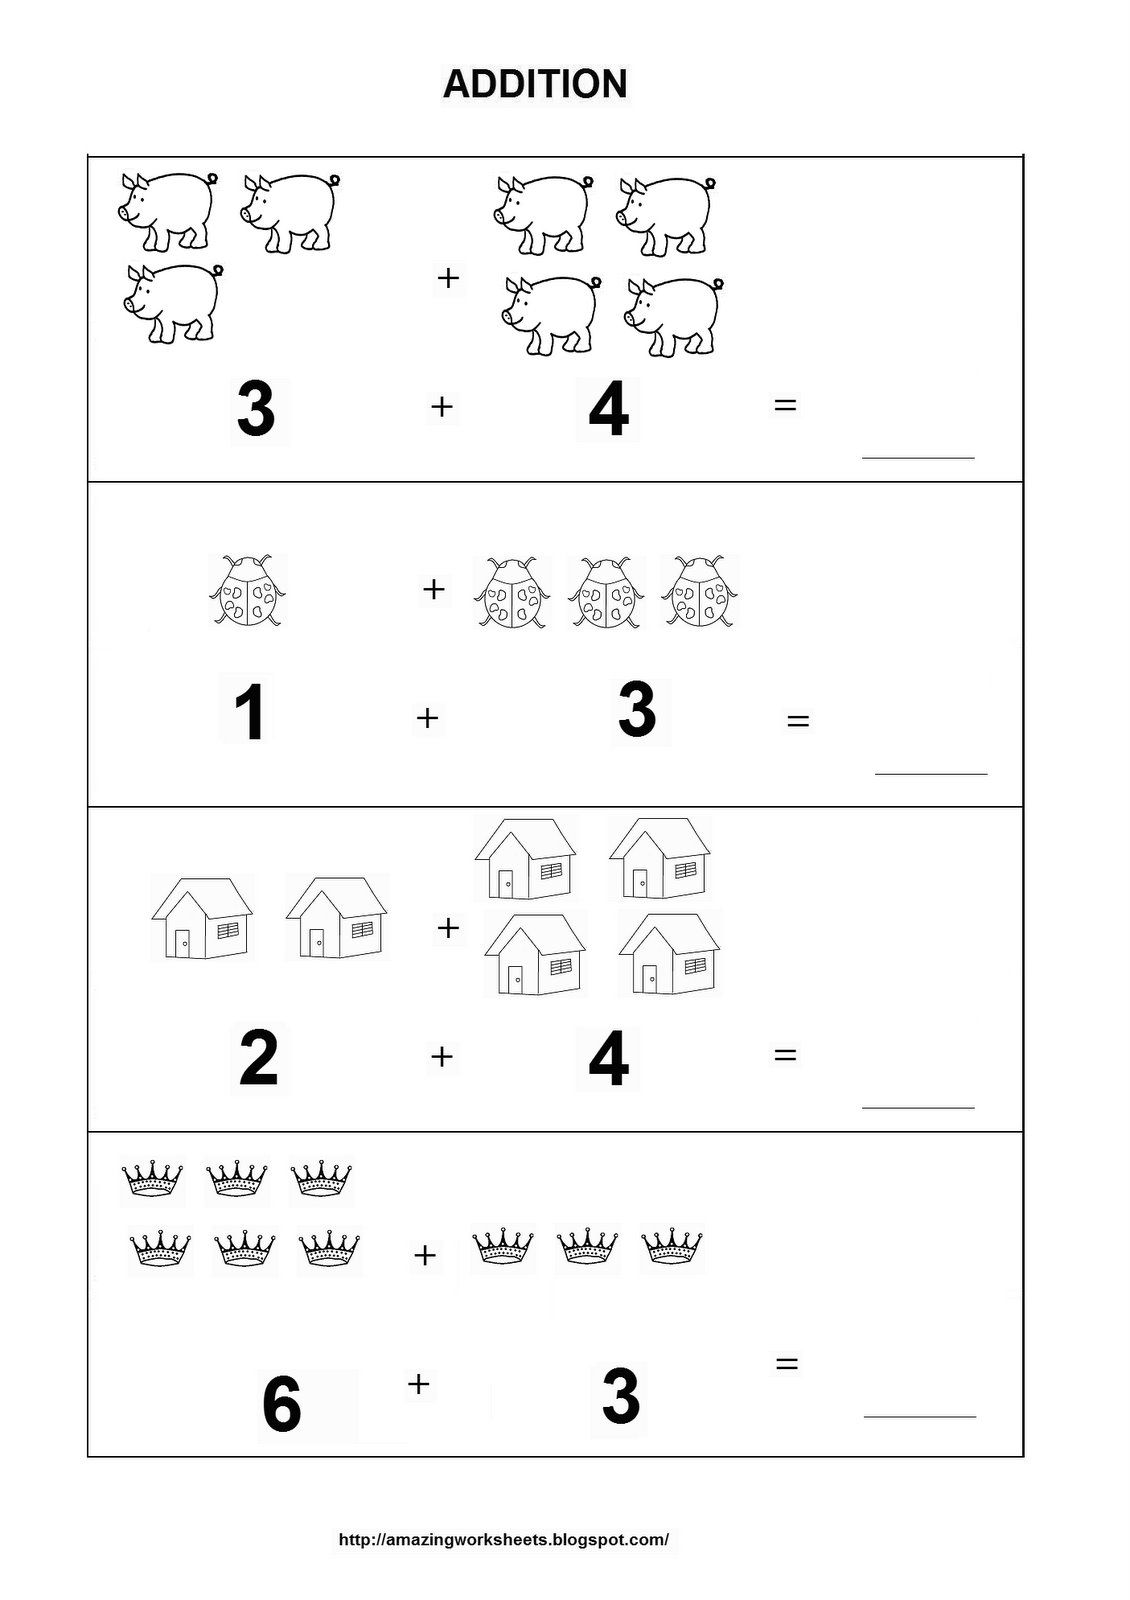 math worksheet : addition worksheet  homeschooling addition  pinterest  : Addition Worksheet Free